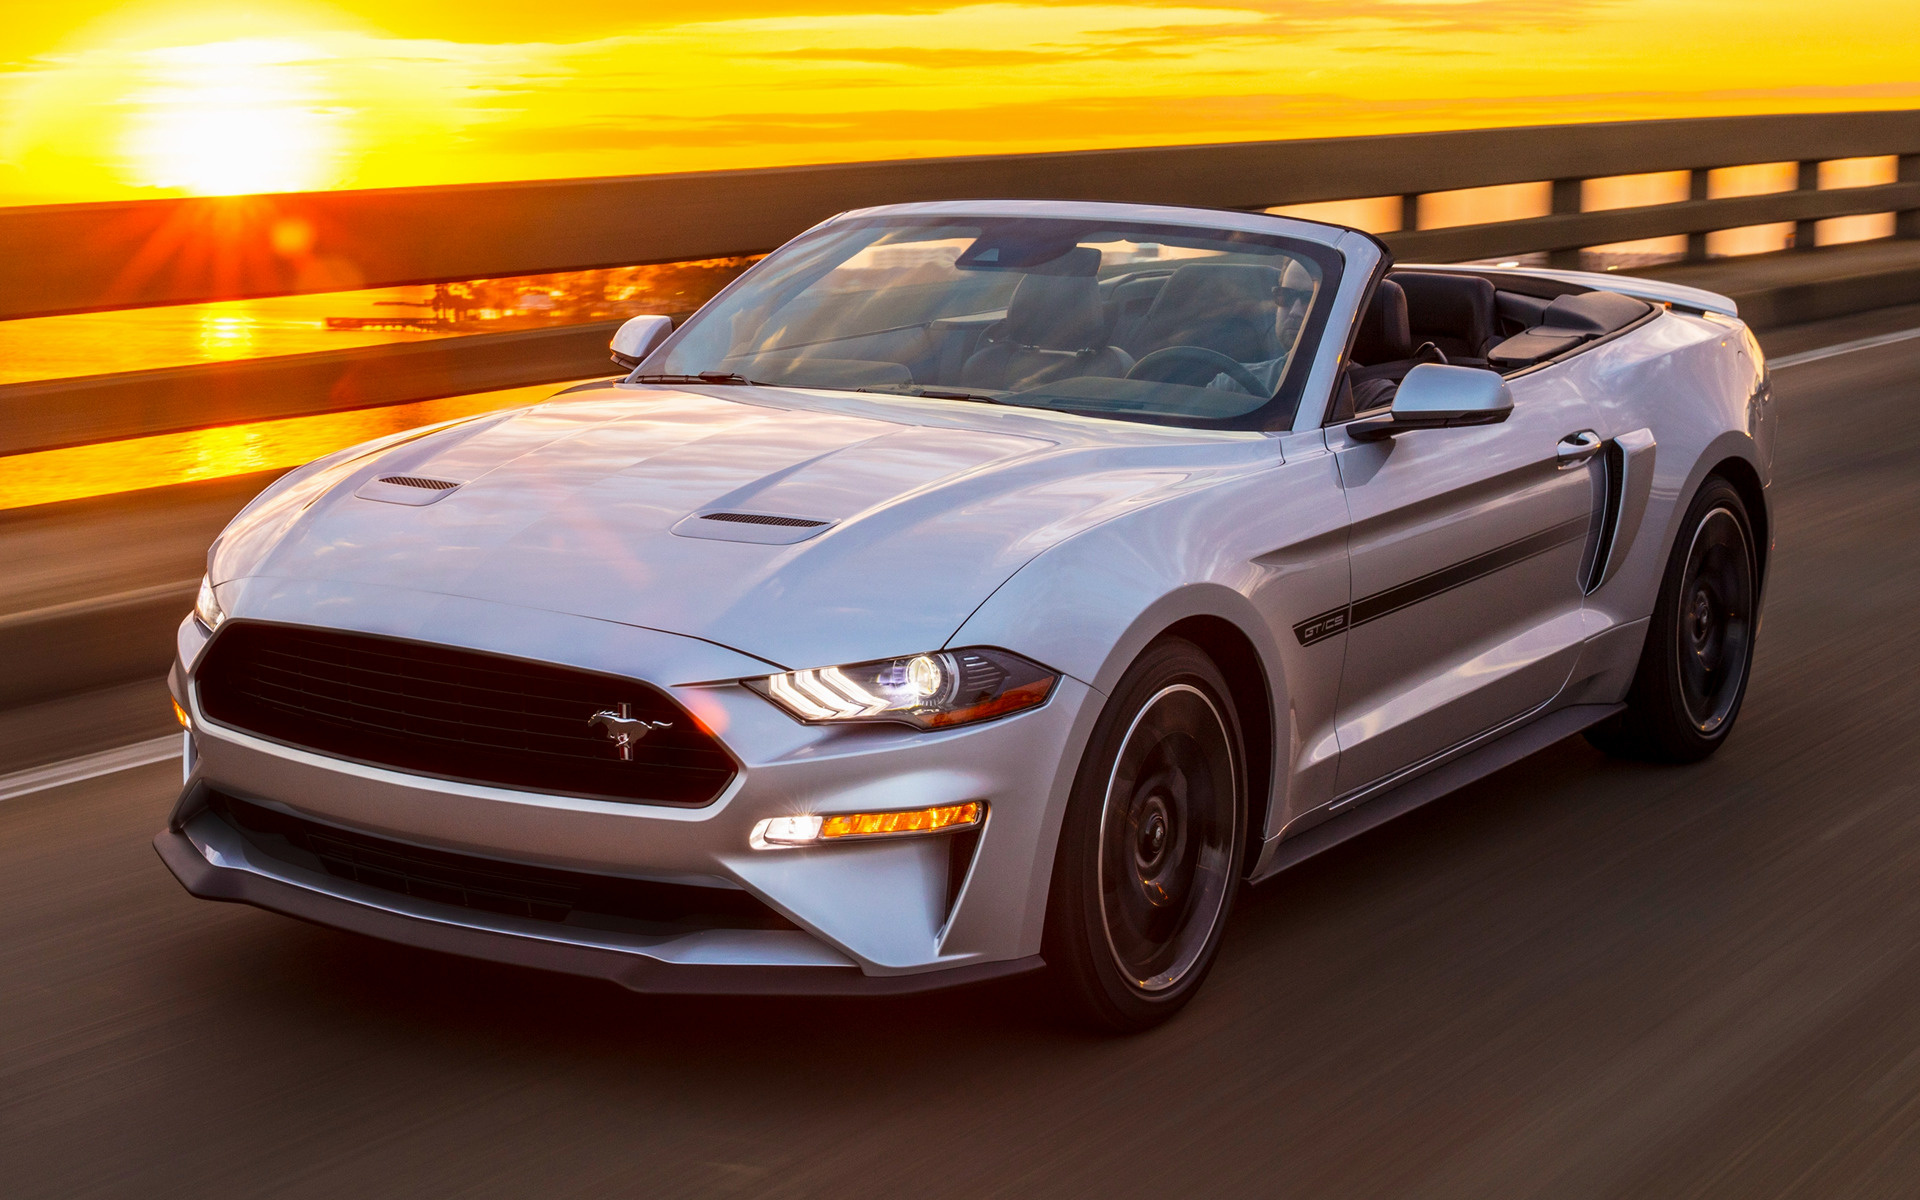 Mustang Gt California Special >> 2019 Ford Mustang GT Convertible California Special ...